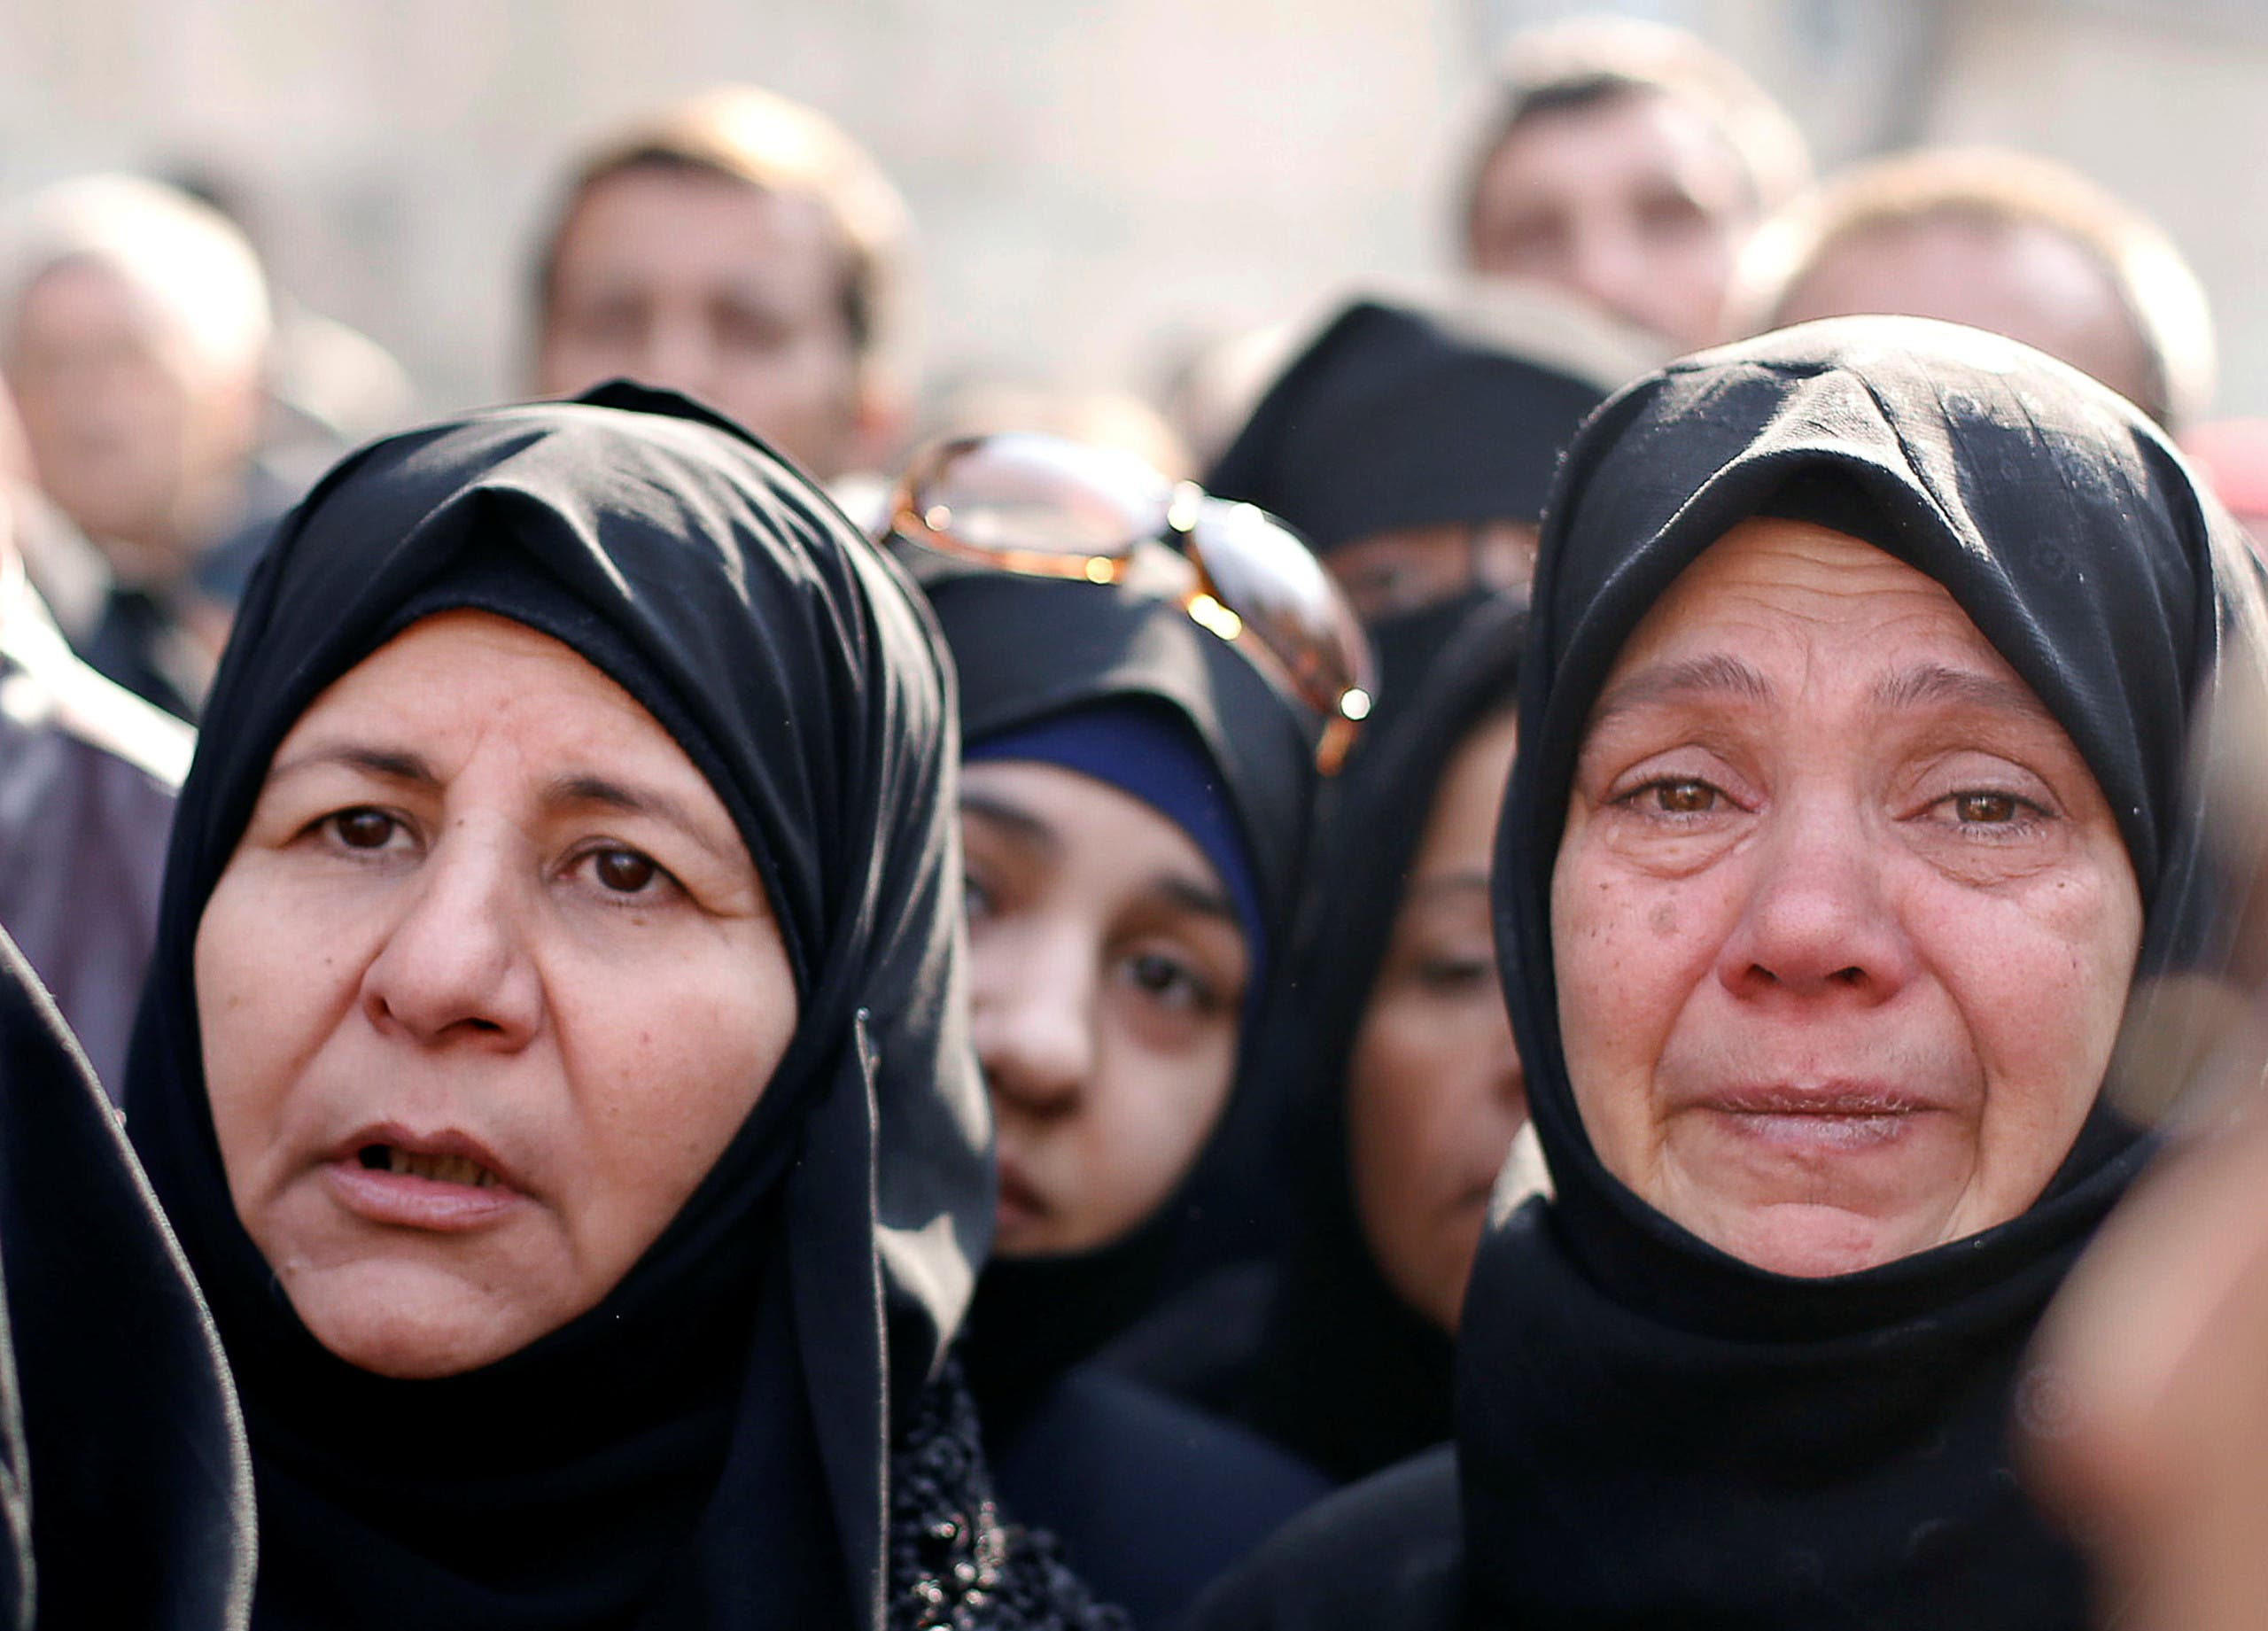 Women react as they wait outside a government military police centre to visit their relatives, who were evacuated from the eastern districts of Aleppo and are being prepared to begin their military service, in Aleppo, Syria December 11, 2016. REUTERS/Omar Sanadiki